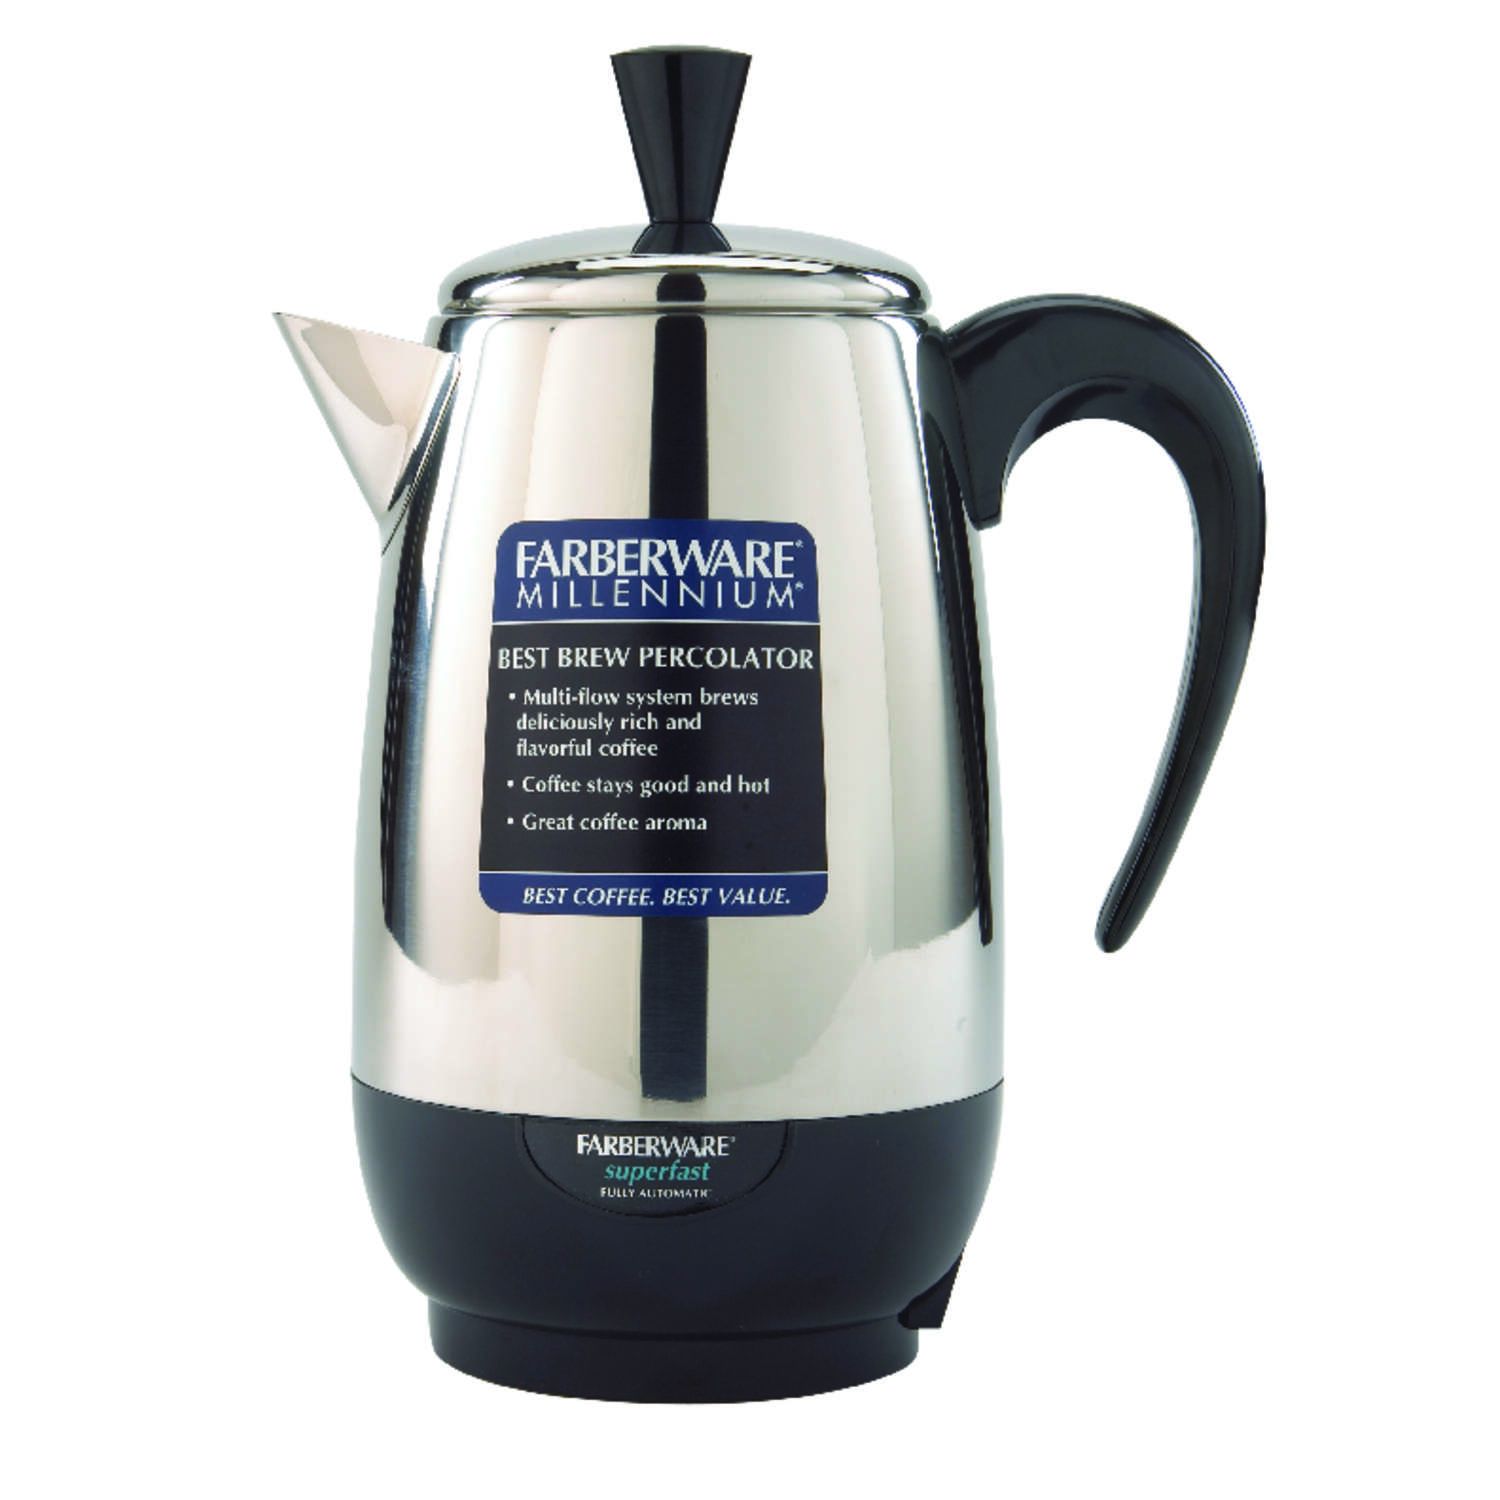 Farberware  8 cups Black/Silver  Percolator